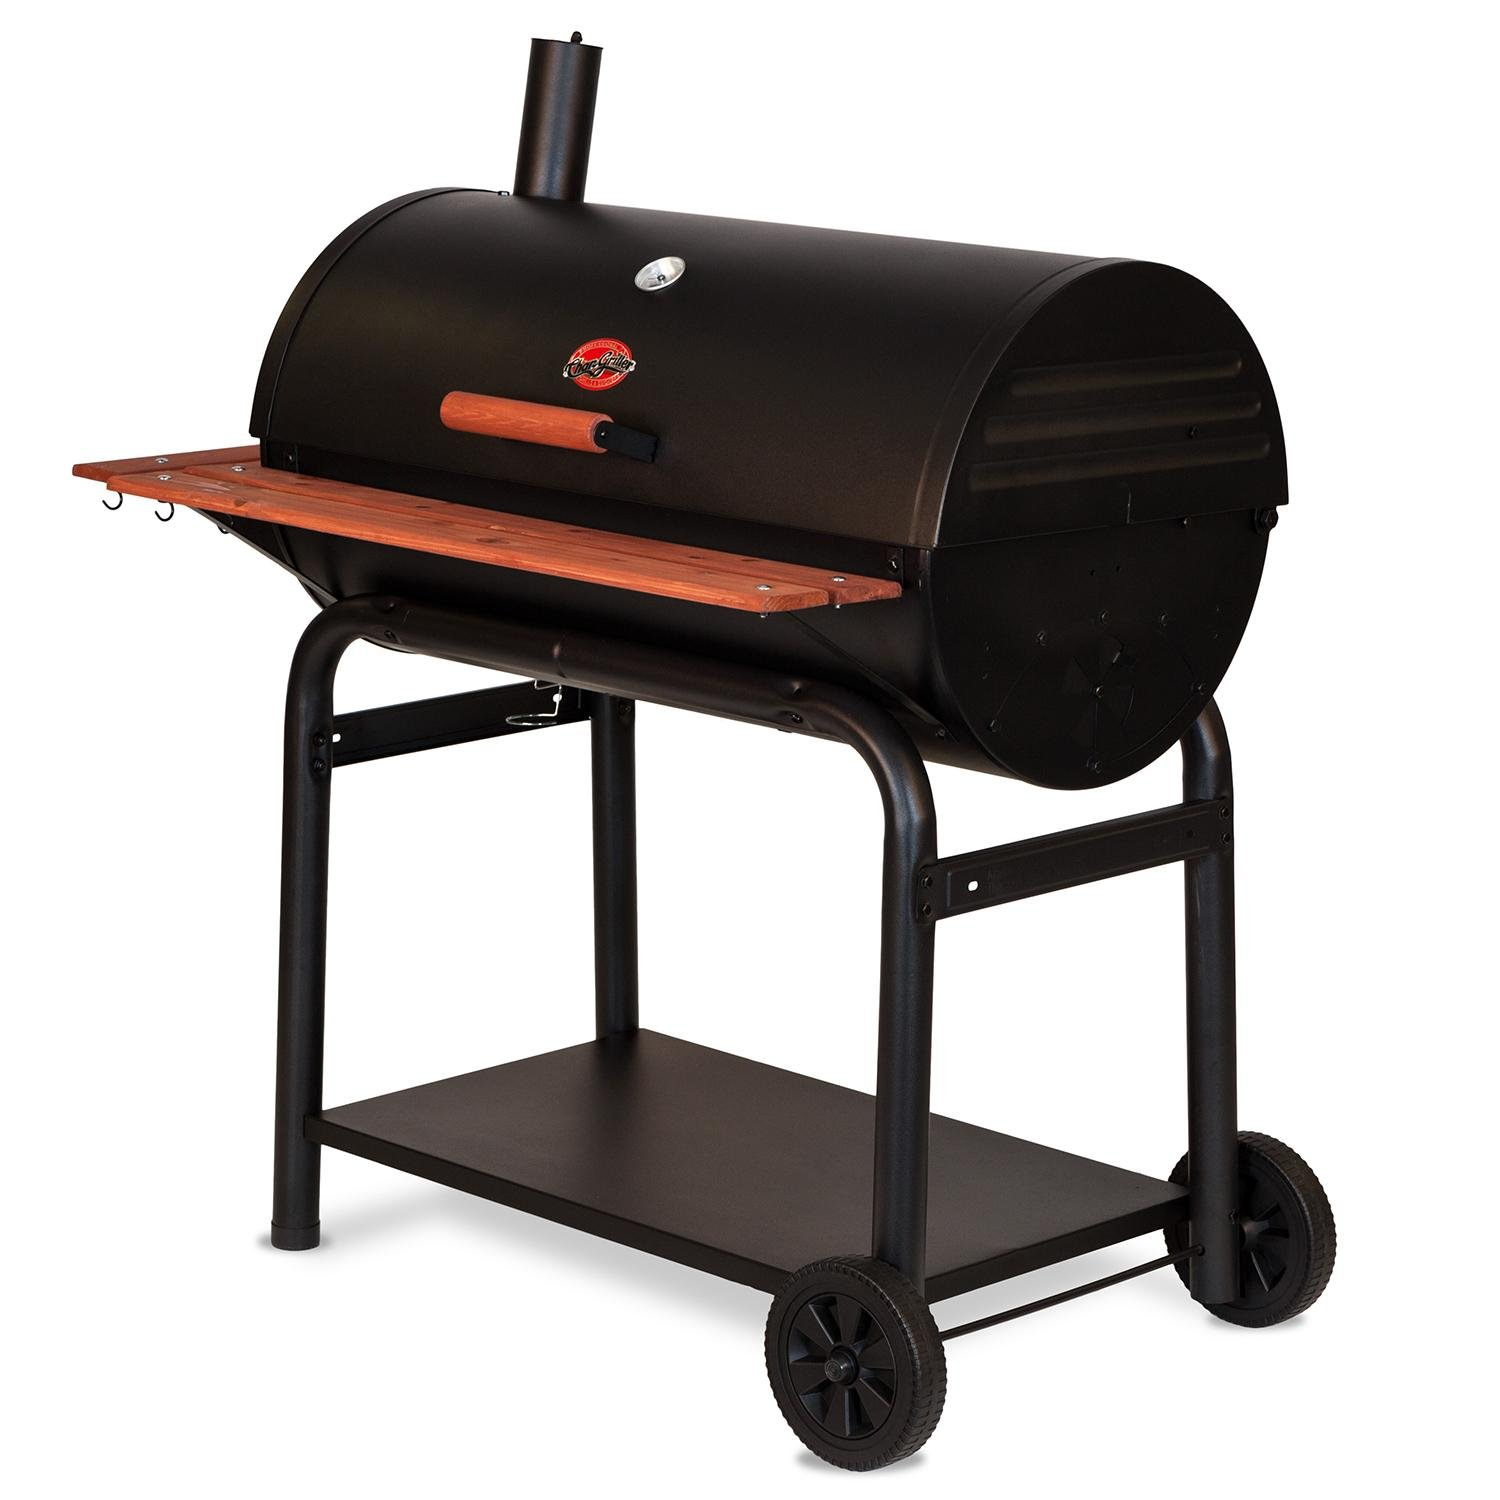 amazon com char griller 2137 outlaw 1063 square inch charcoal